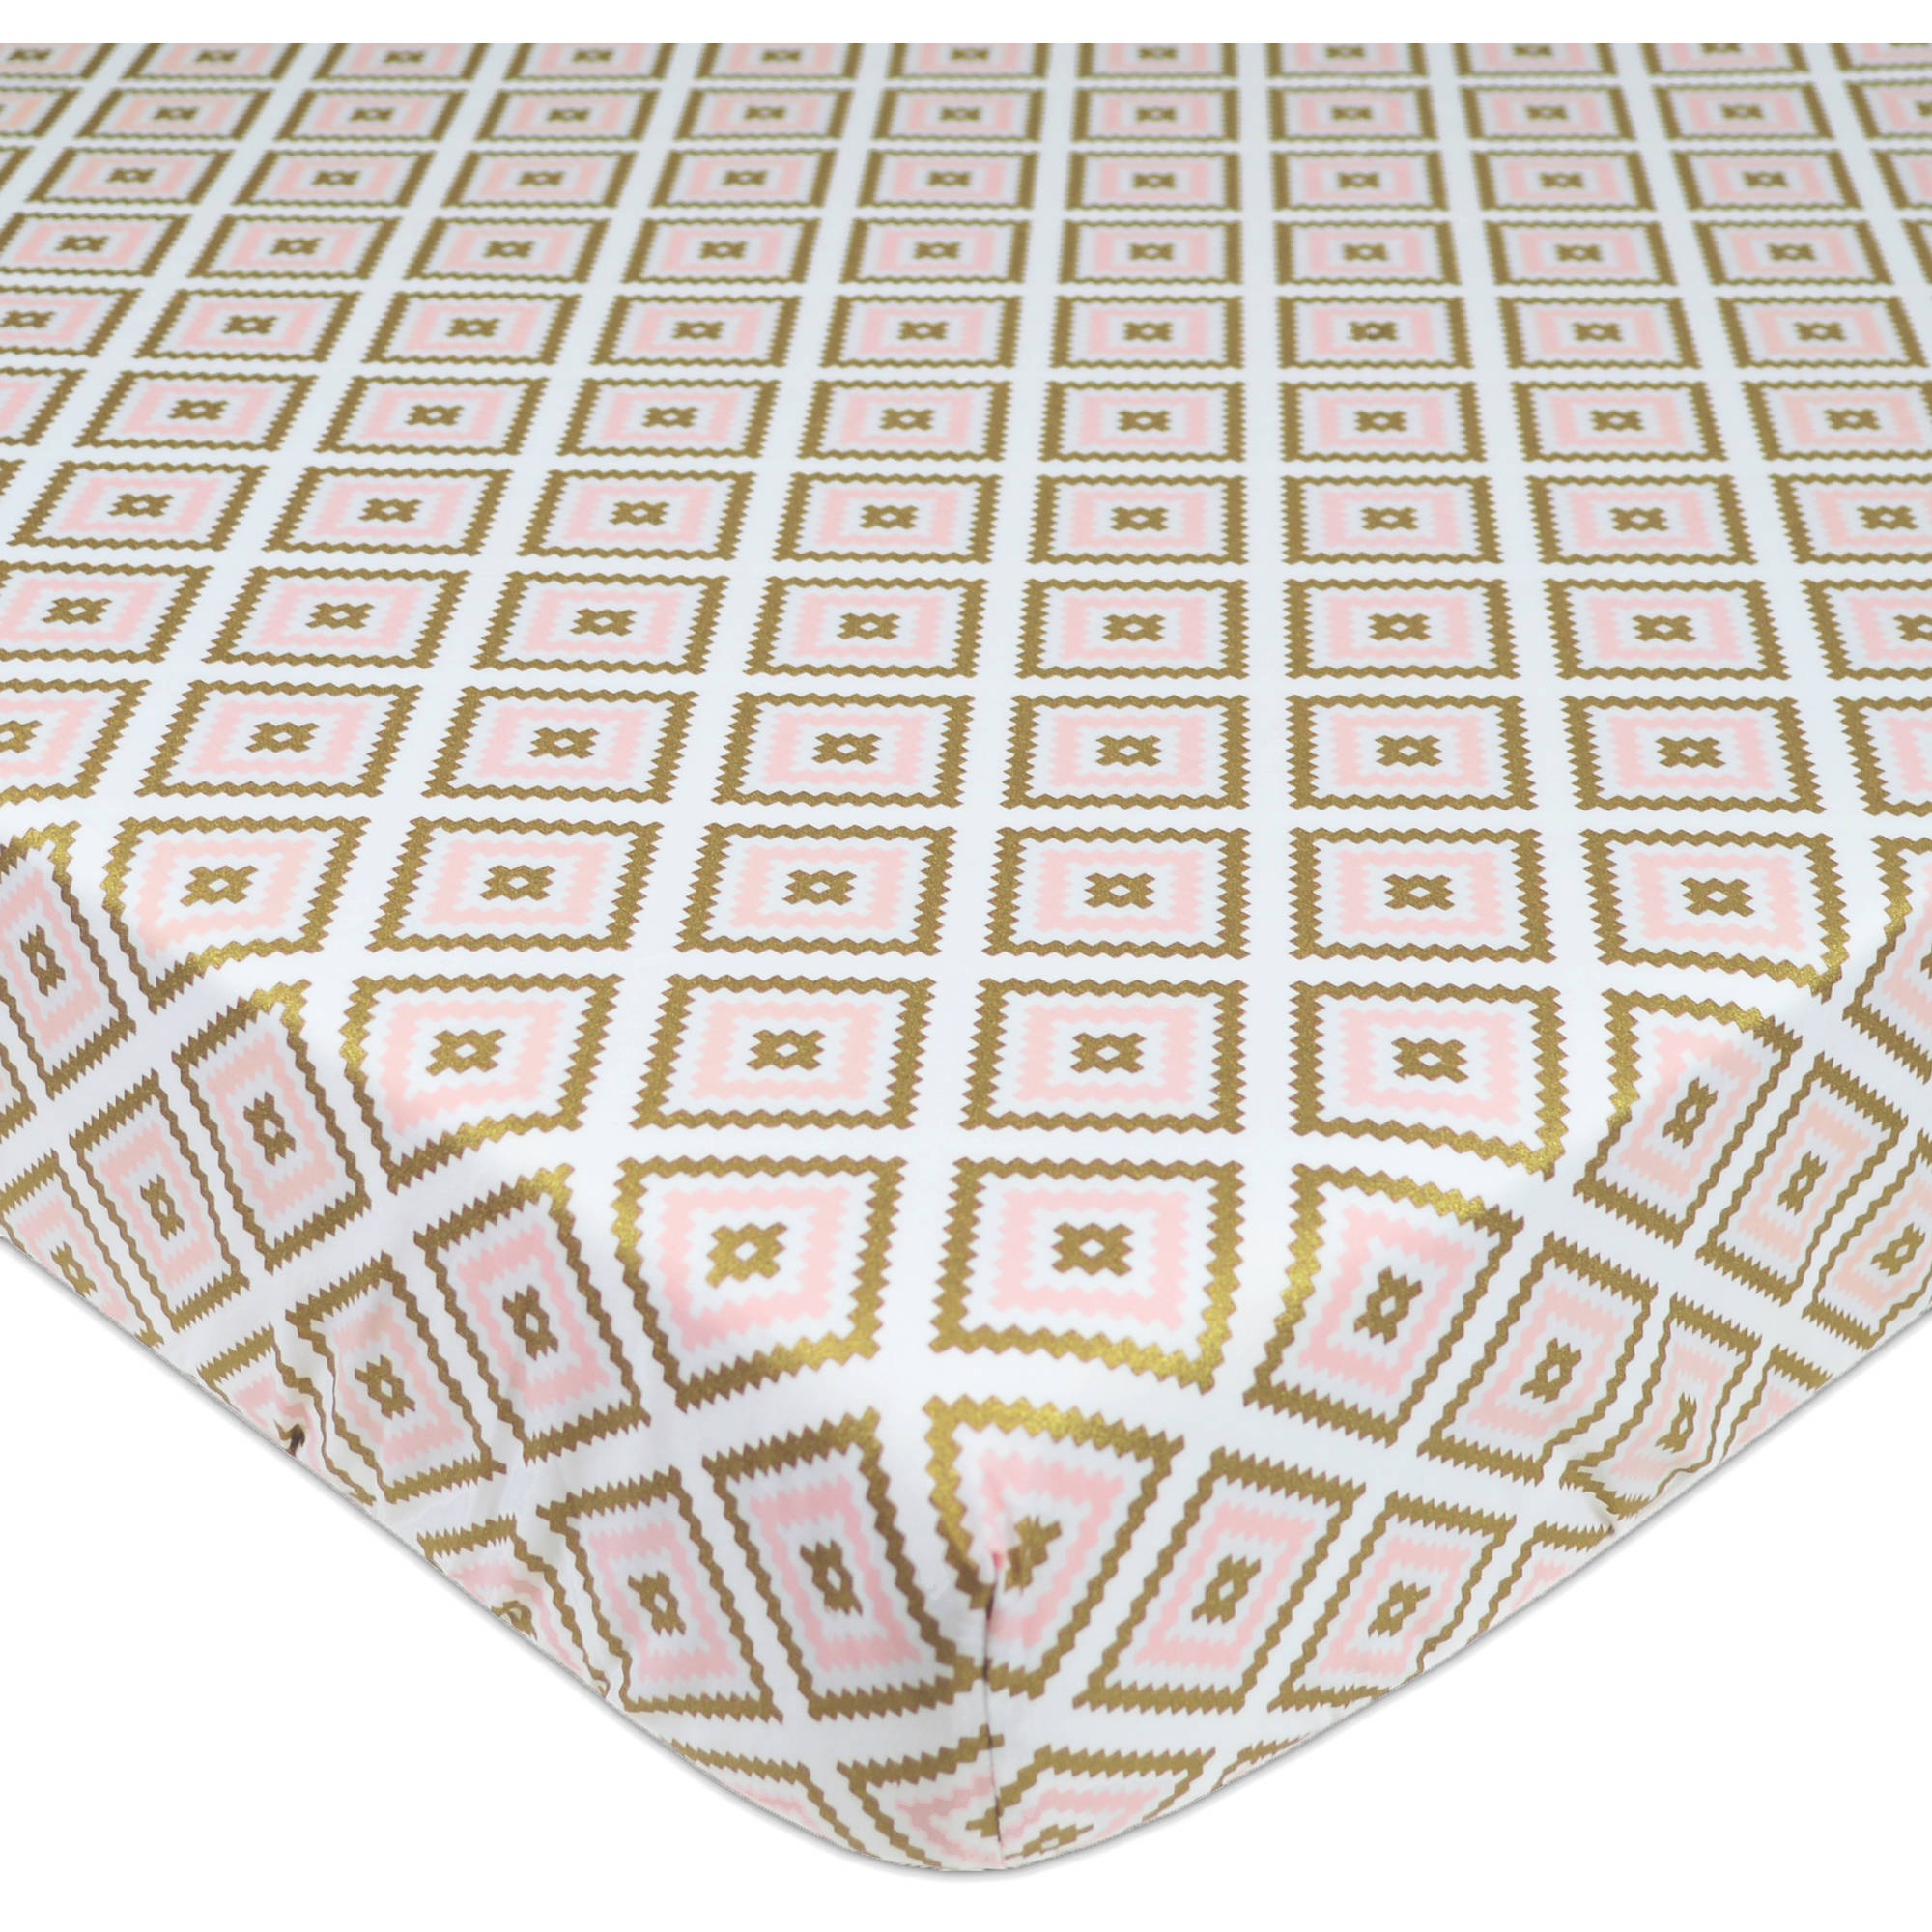 American Baby Company 100 Percent Cotton Percale Printed Sparkle Fitted Crib Sheet, Gold/Pink Kilim